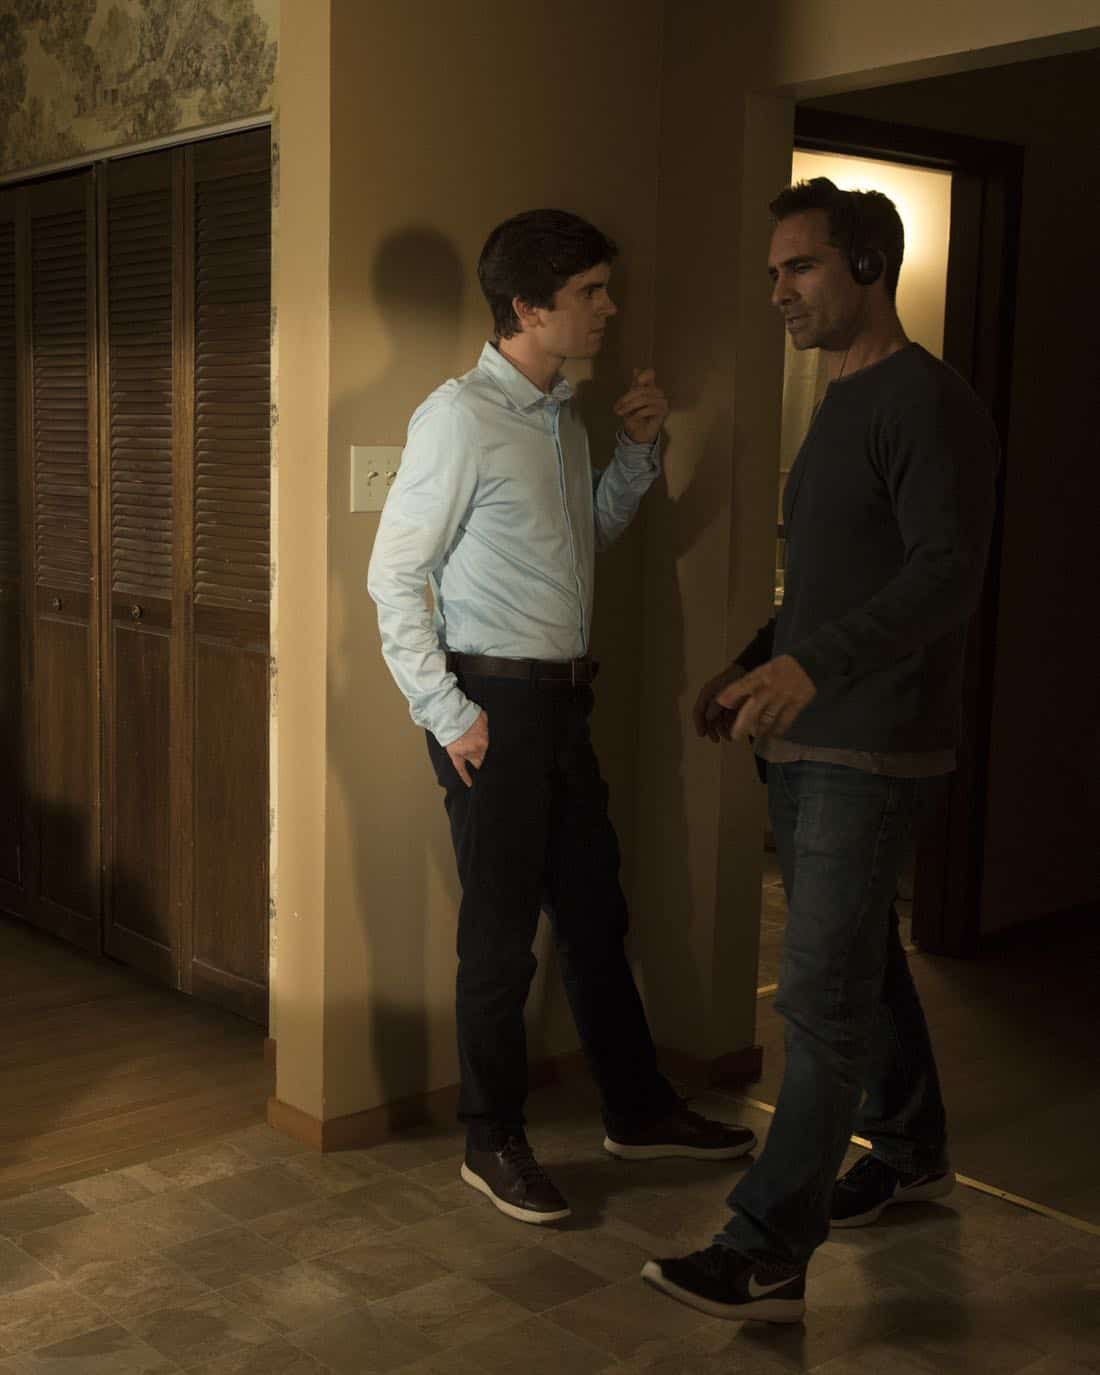 """THE GOOD DOCTOR - """"Apple"""" - During a robbery at the grocery mart Dr. Shaun Murphy is shopping at, his communication limitations puts lives at risk. Meanwhile, after Shaun's traumatic day, Dr. Aaron Glassman worries that he isn't doing enough to help Shaun, on """"The Good Doctor,"""" MONDAY, NOV. 20 (10:01-11:00 p.m. EST), on The ABC Television Network. (ABC/Jack Rowand) FREDDIE HIGHMORE, NESTOR CARBONELL (DIRECTOR)"""